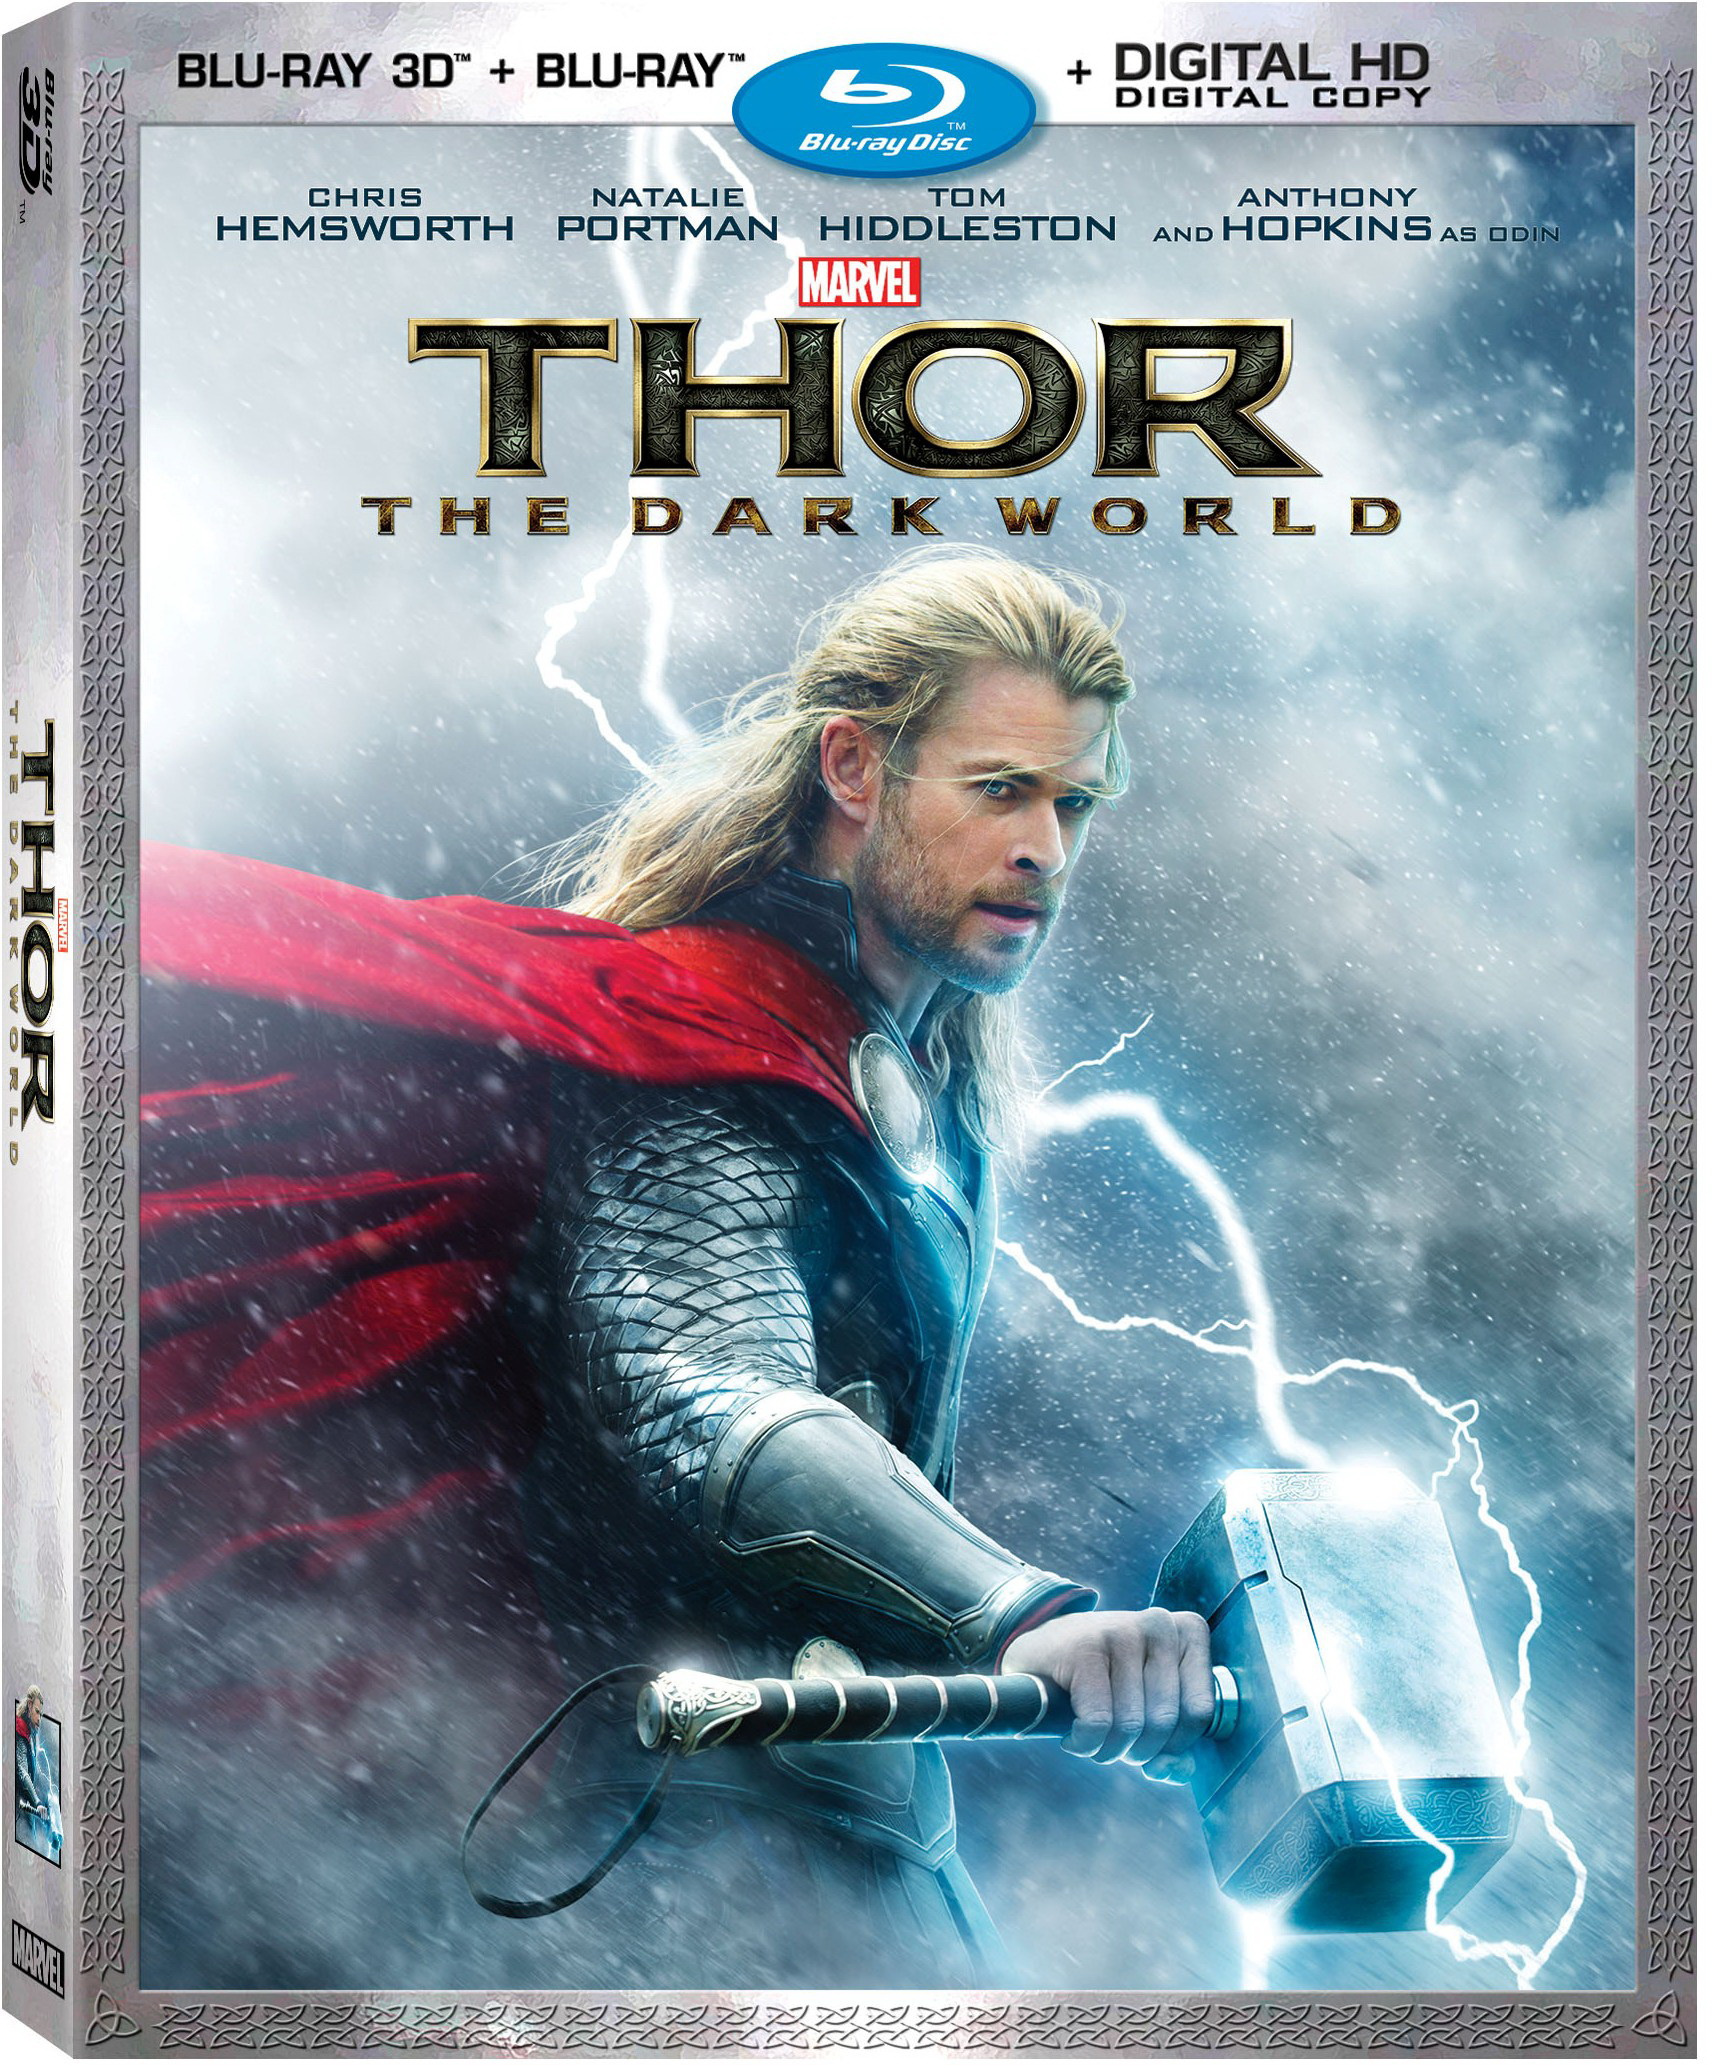 image - thor-the-dark-world-3d-combo-box-art | disney wiki